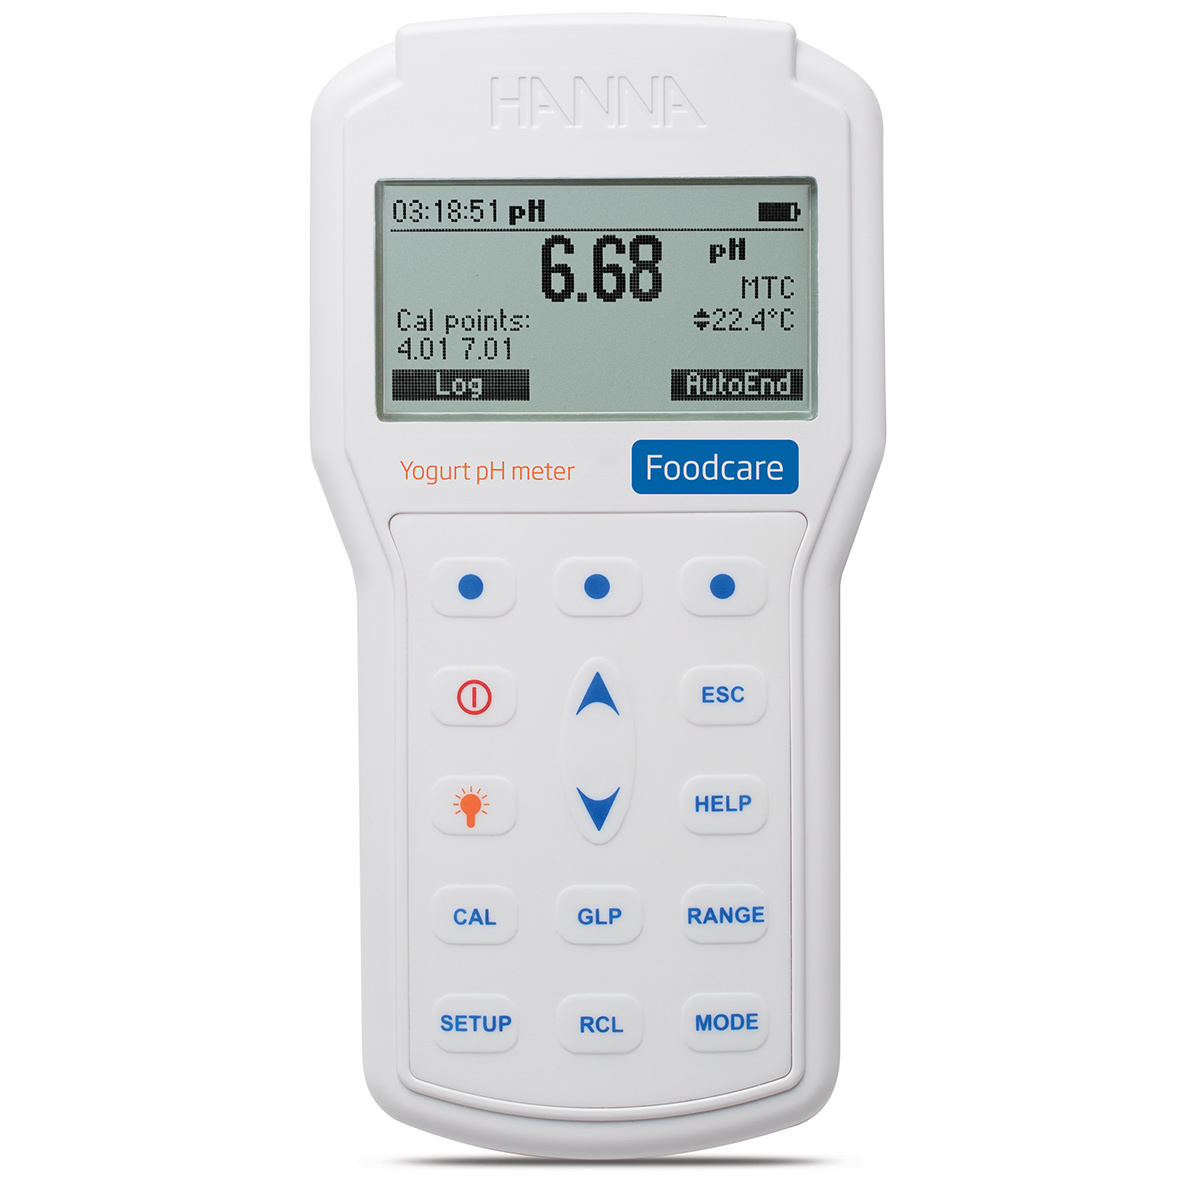 Professional Portable Yogurt pH Meter - HI98164